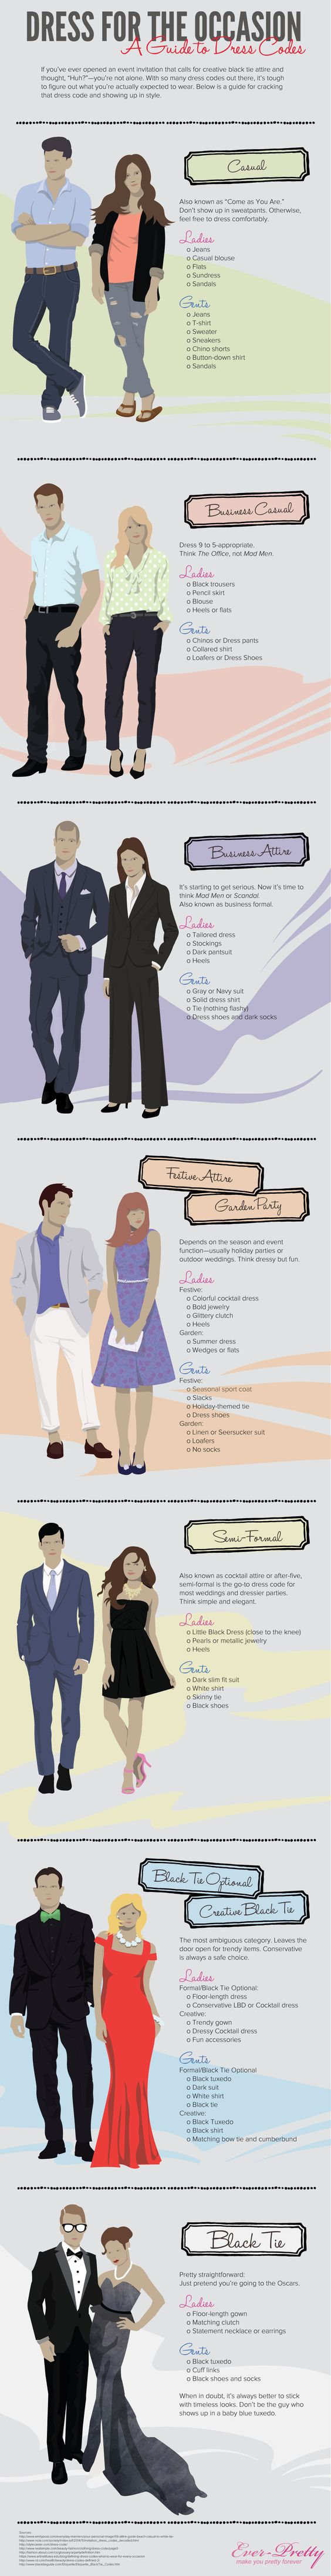 Dress for the Occasion: A Guide to Dress Codes #infographic #Fashion #Lifestyle